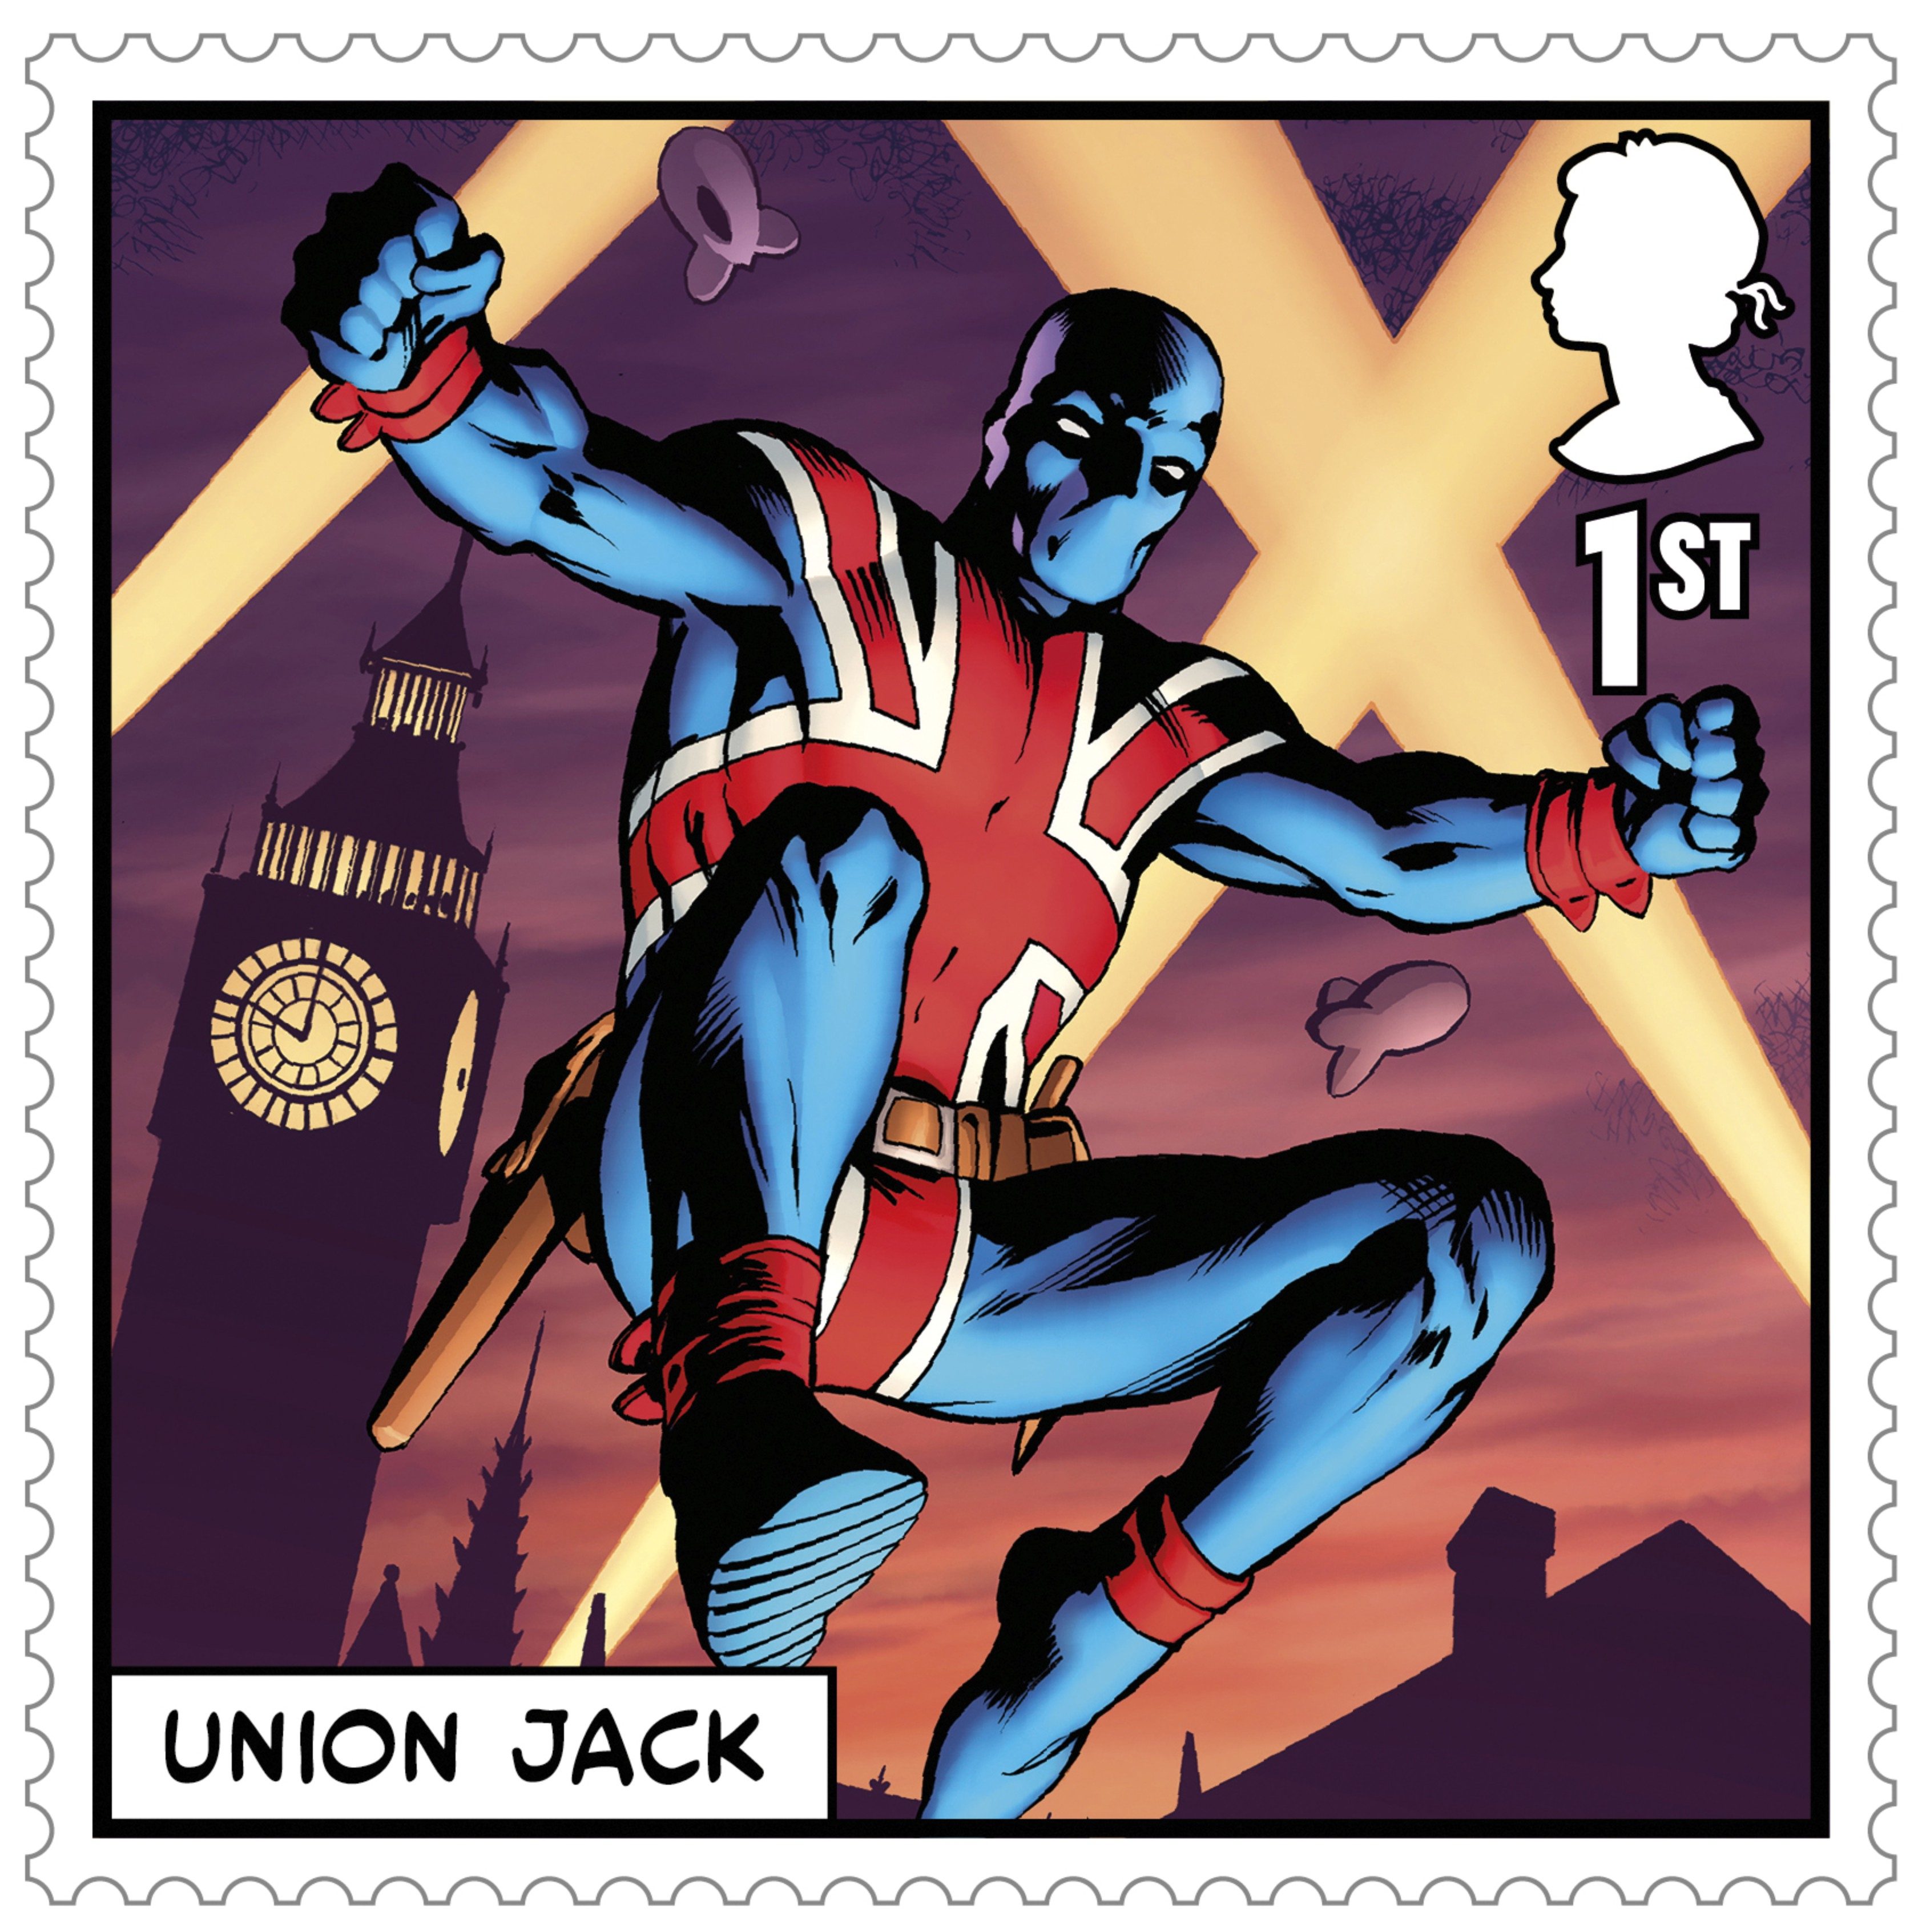 Royal Mail Stamps 2019 - Marvel Comics - All About Stamps